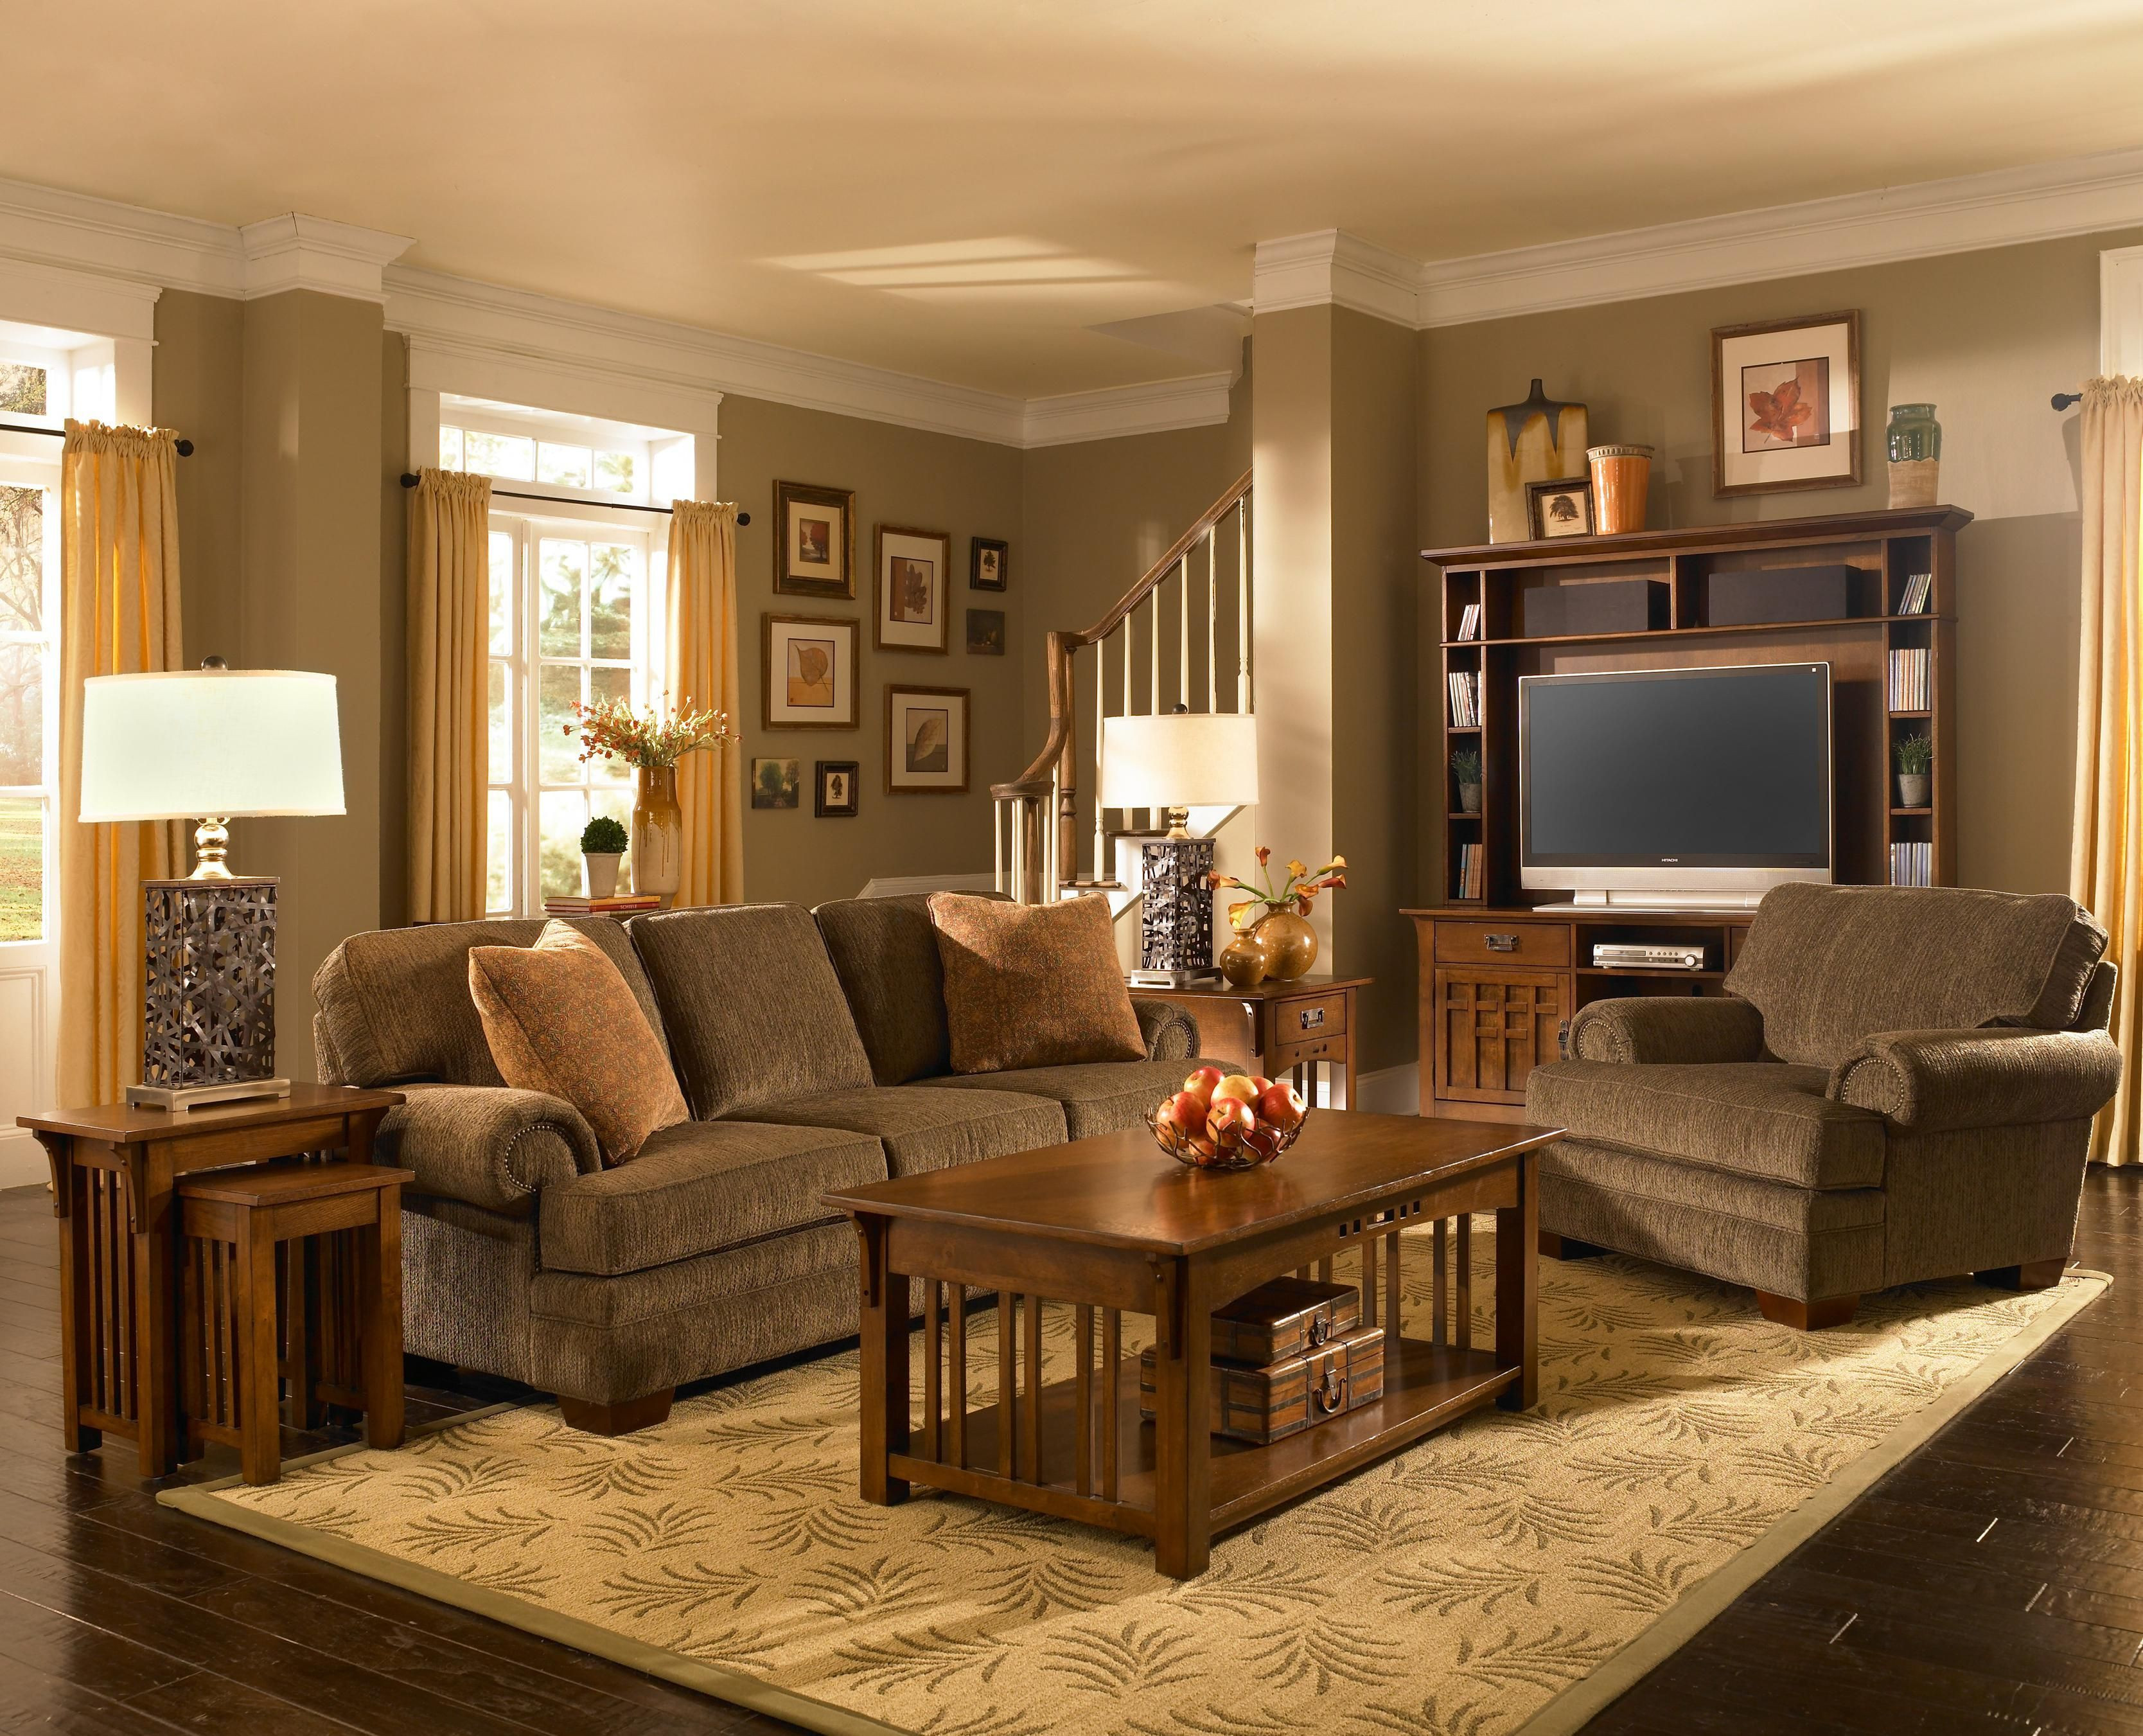 Best ideas about Mission Style Living Room Furniture . Save or Pin My dream living room I love mission style furniture Now.